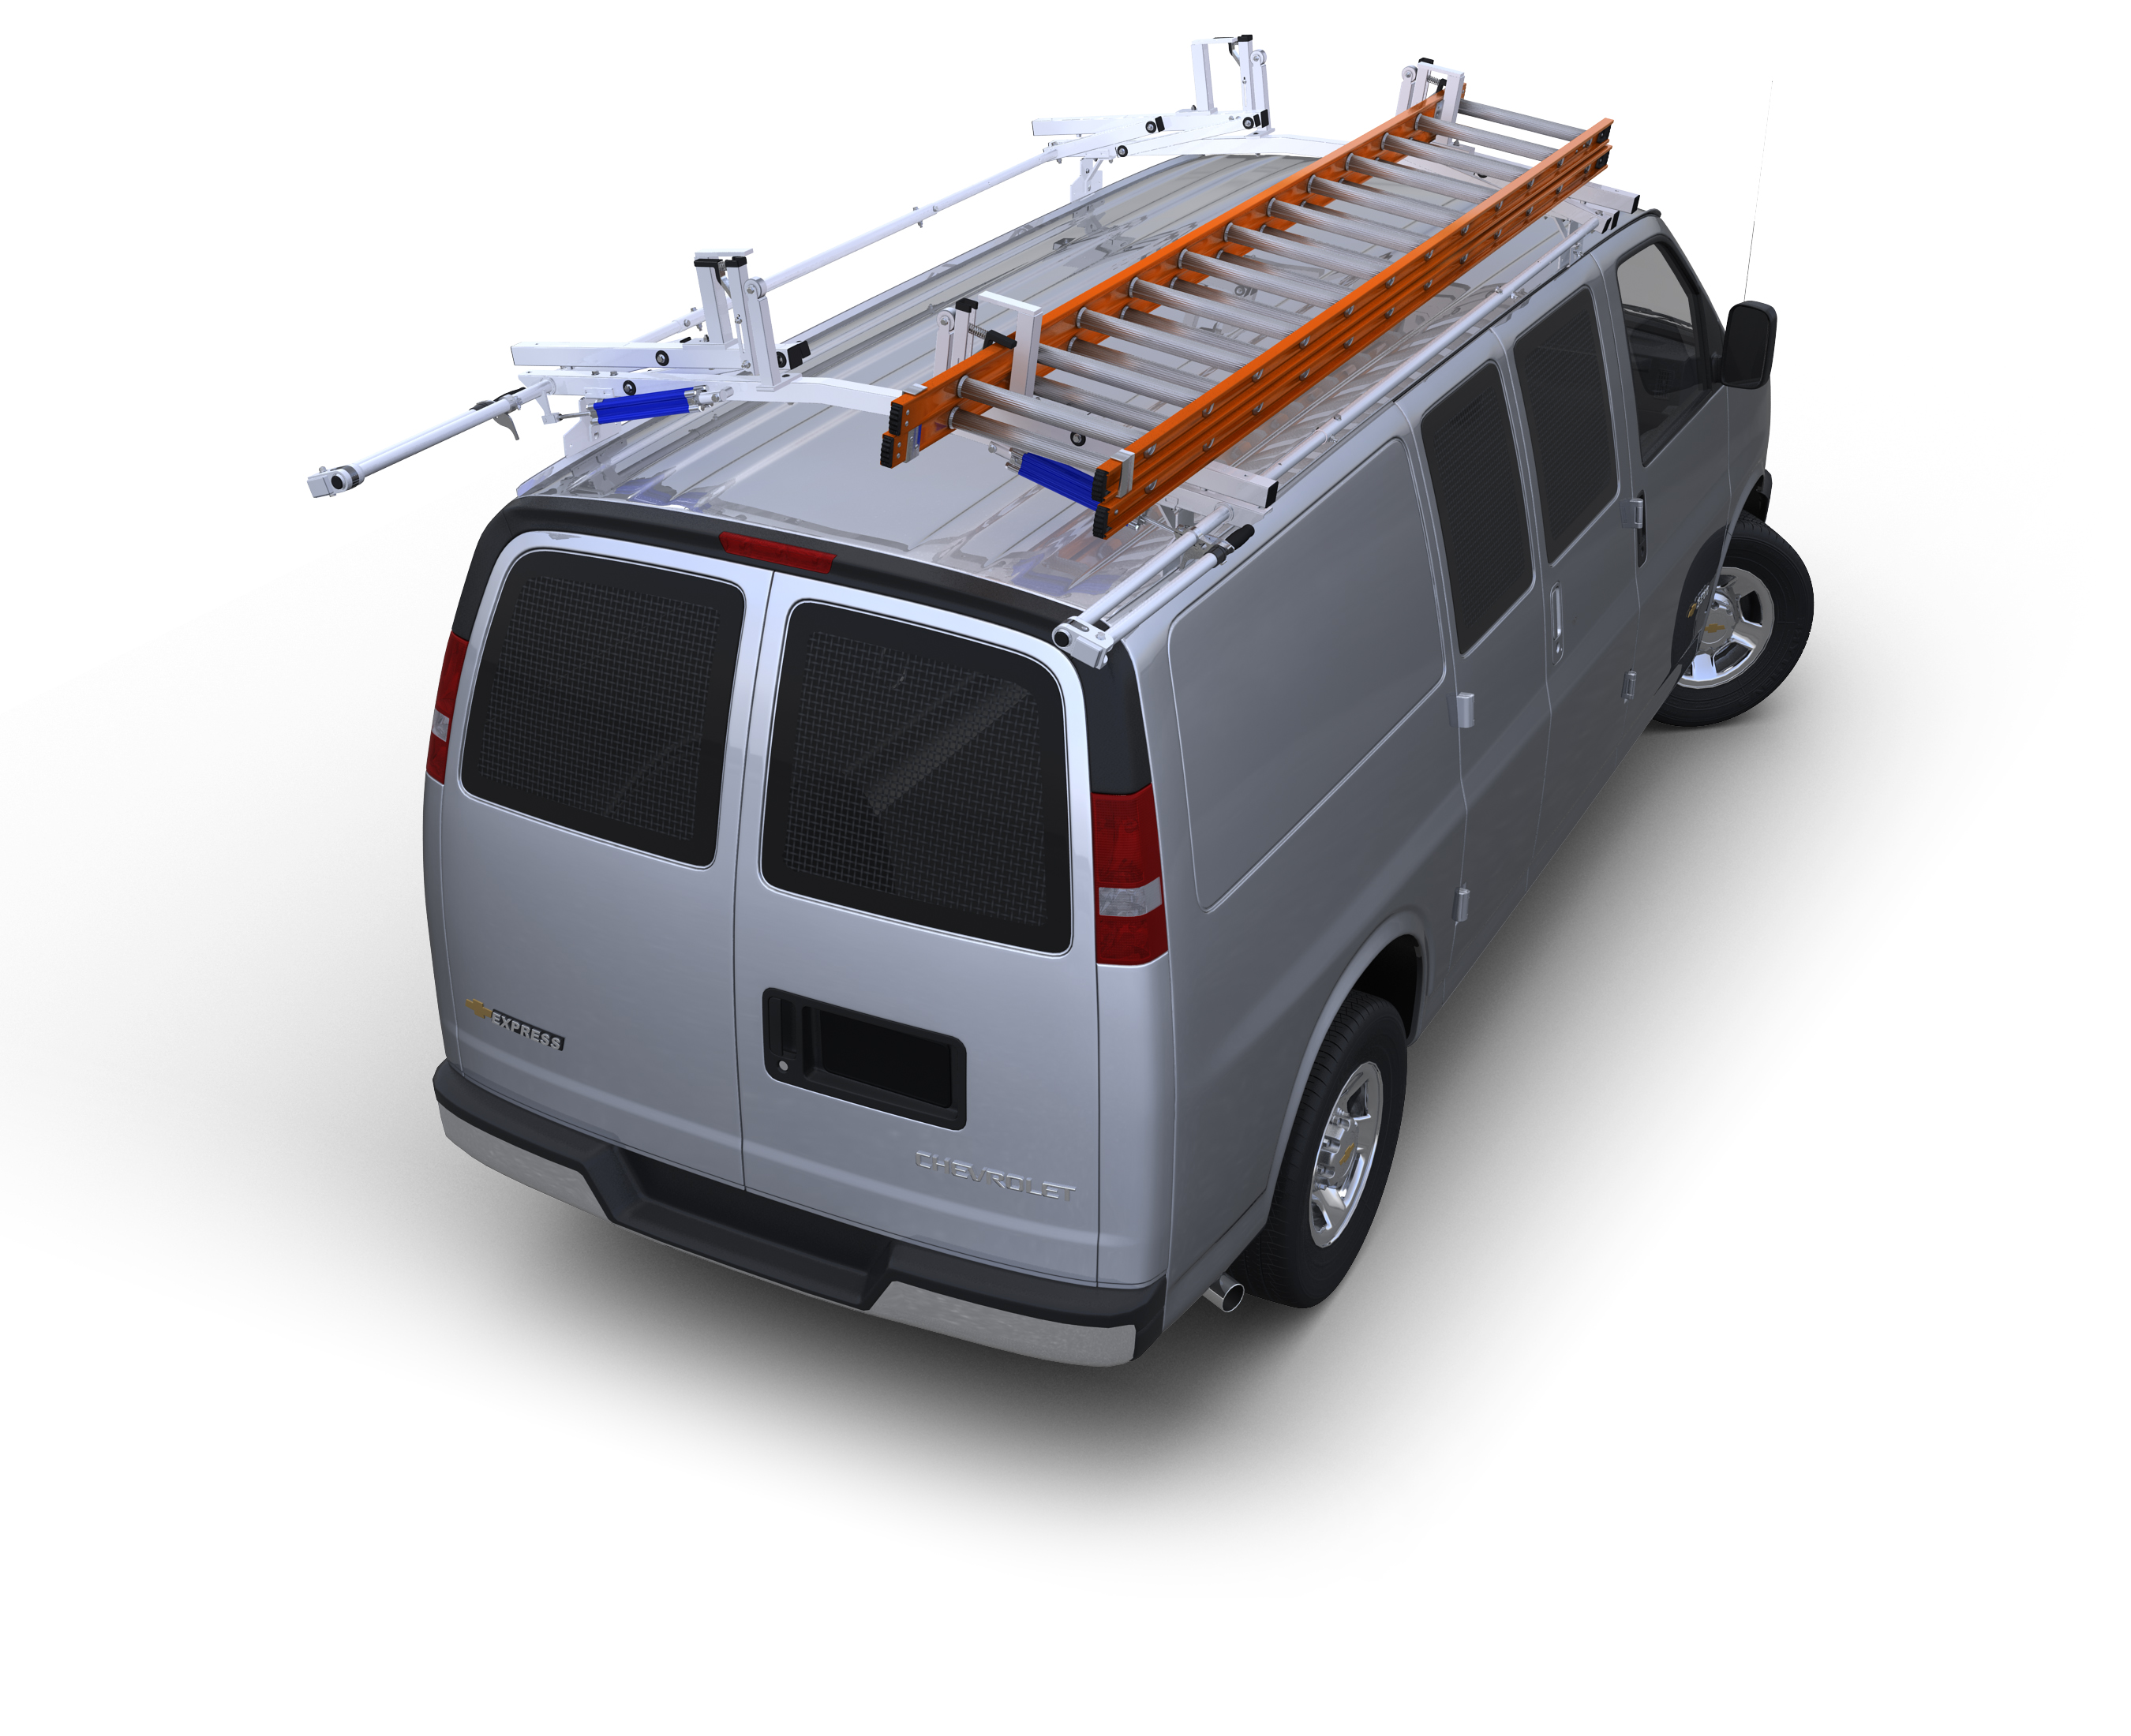 Topper Hot Dip Galvanized 12' Cargo Carrier Rack